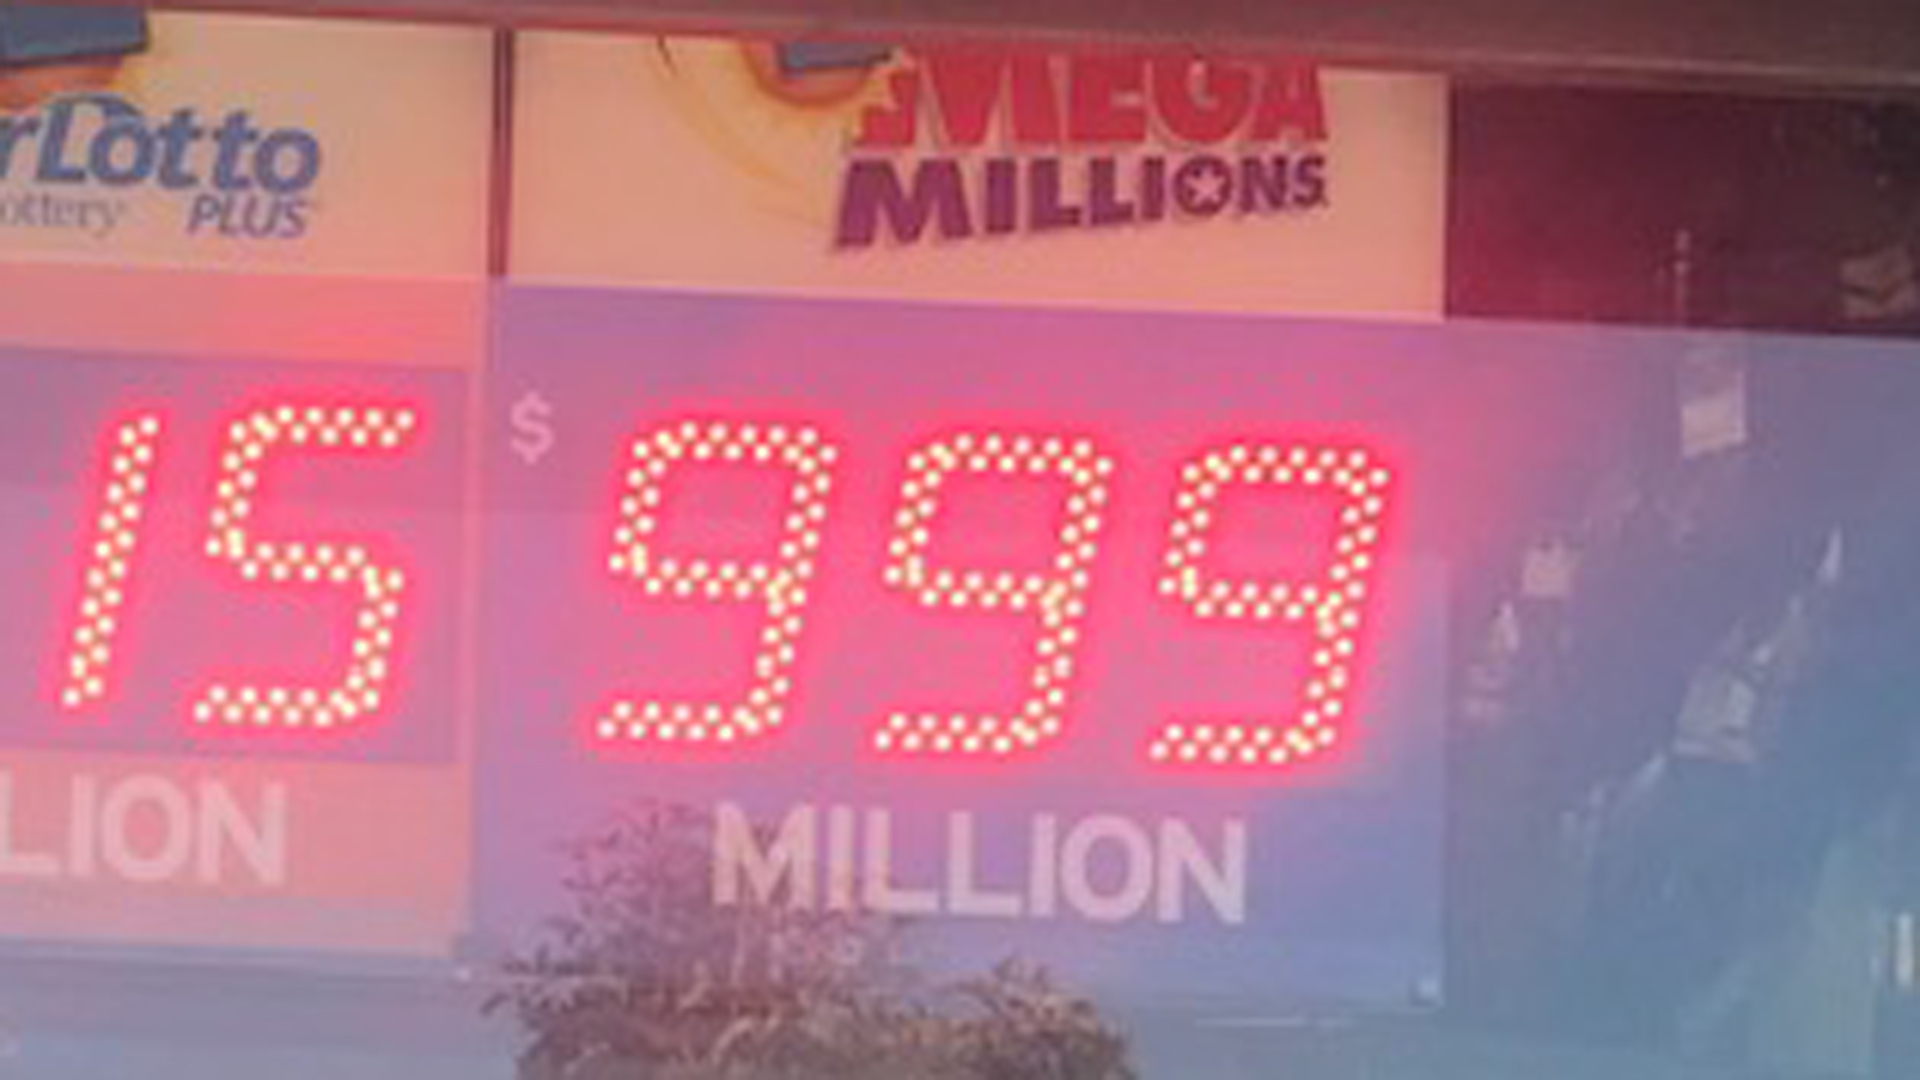 The Mega Millions jackpot climbed to $1 billion on Oct. 19, 2018 -- though the sign only goes to $999 million. (Credit: Erin Myers / KTLA)